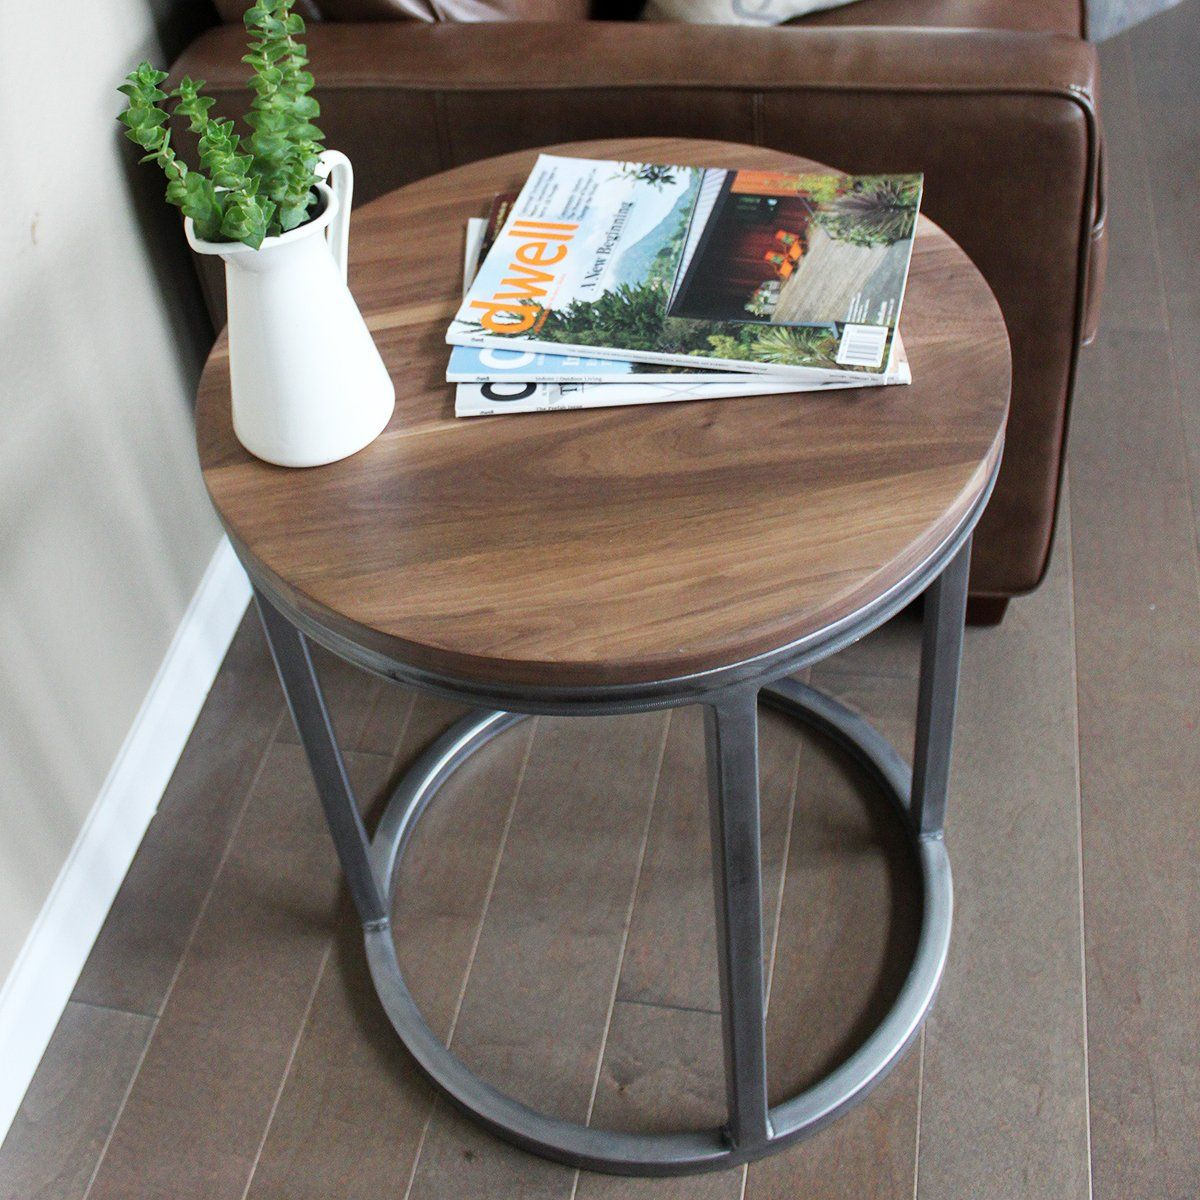 Walnut Wood And Metal End Table Round Free Shipping Metal End Tables Reclaimed Wood Coffee Table Metal Coffee Table [ 1200 x 1200 Pixel ]